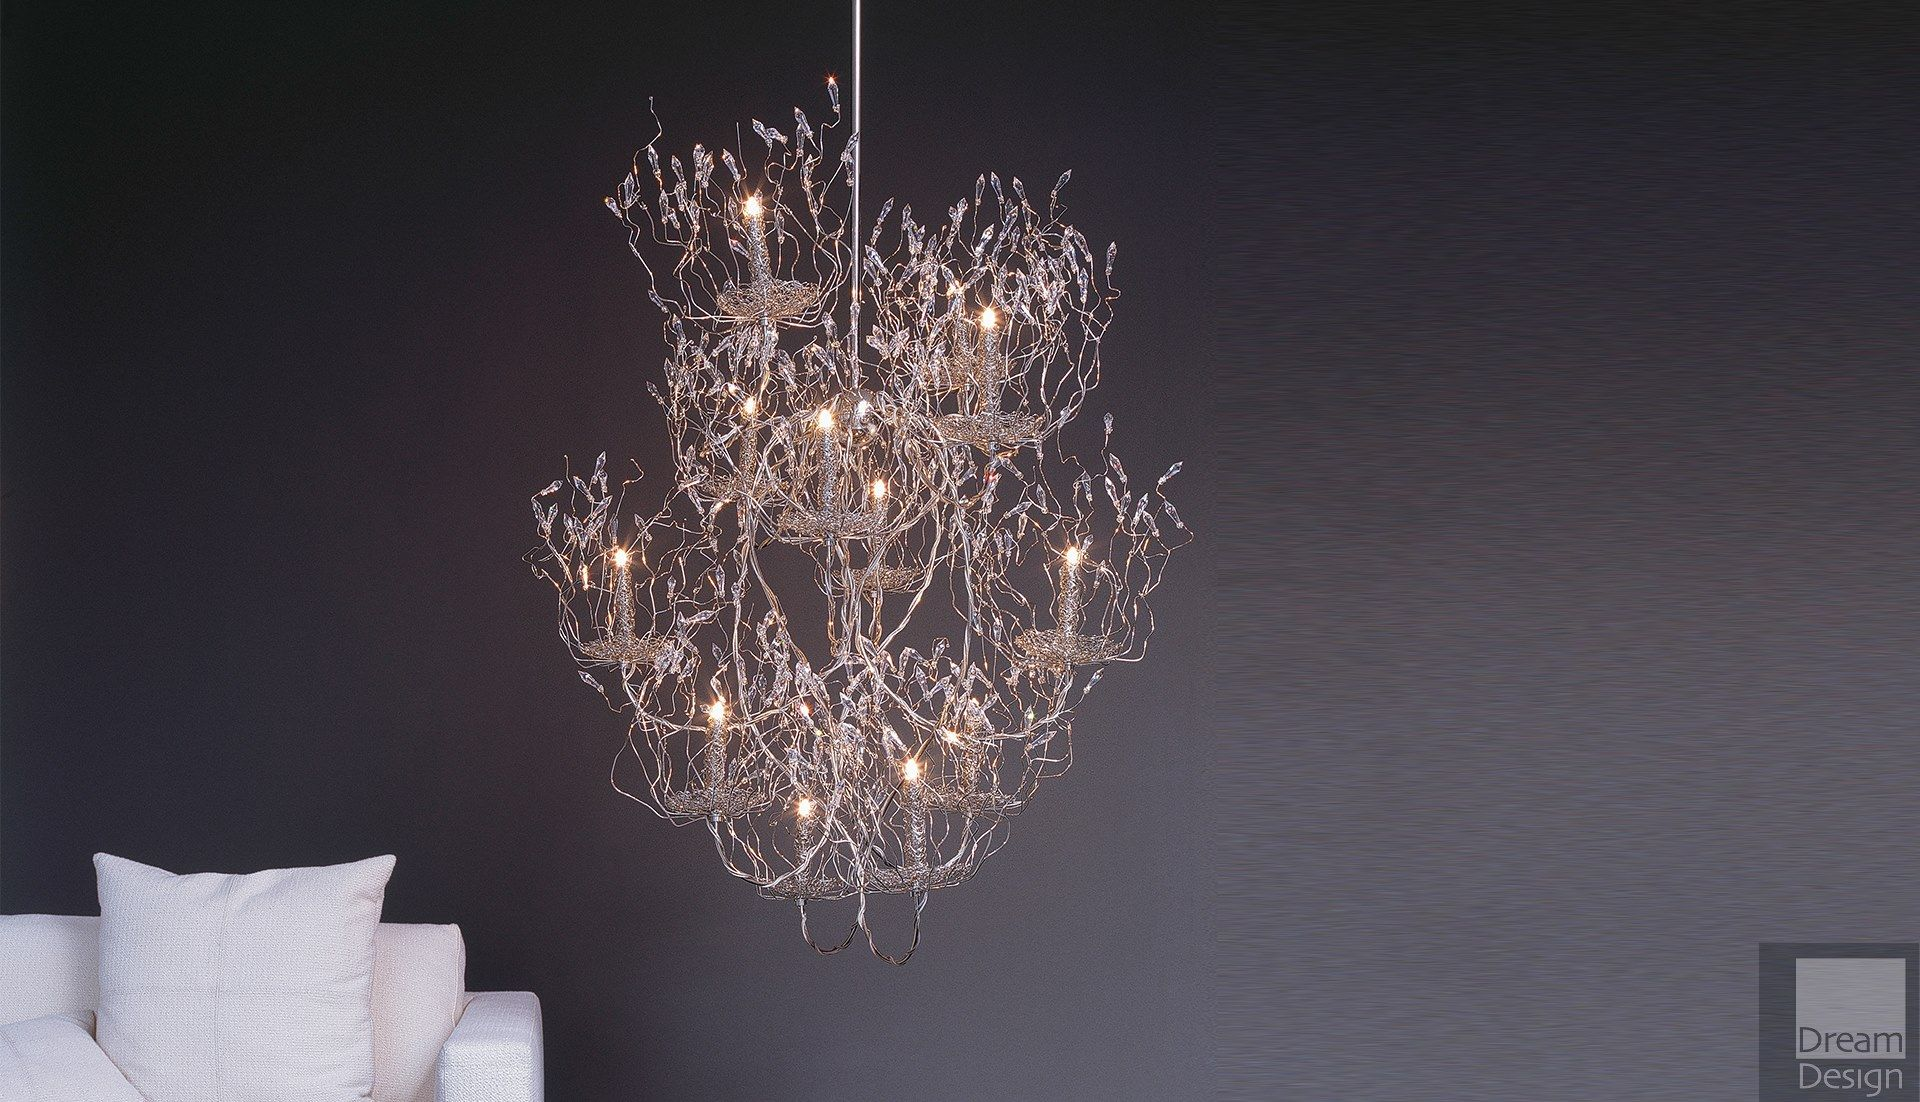 Brand van egmond candles and spirits round chandelier everything brand mozeypictures Choice Image